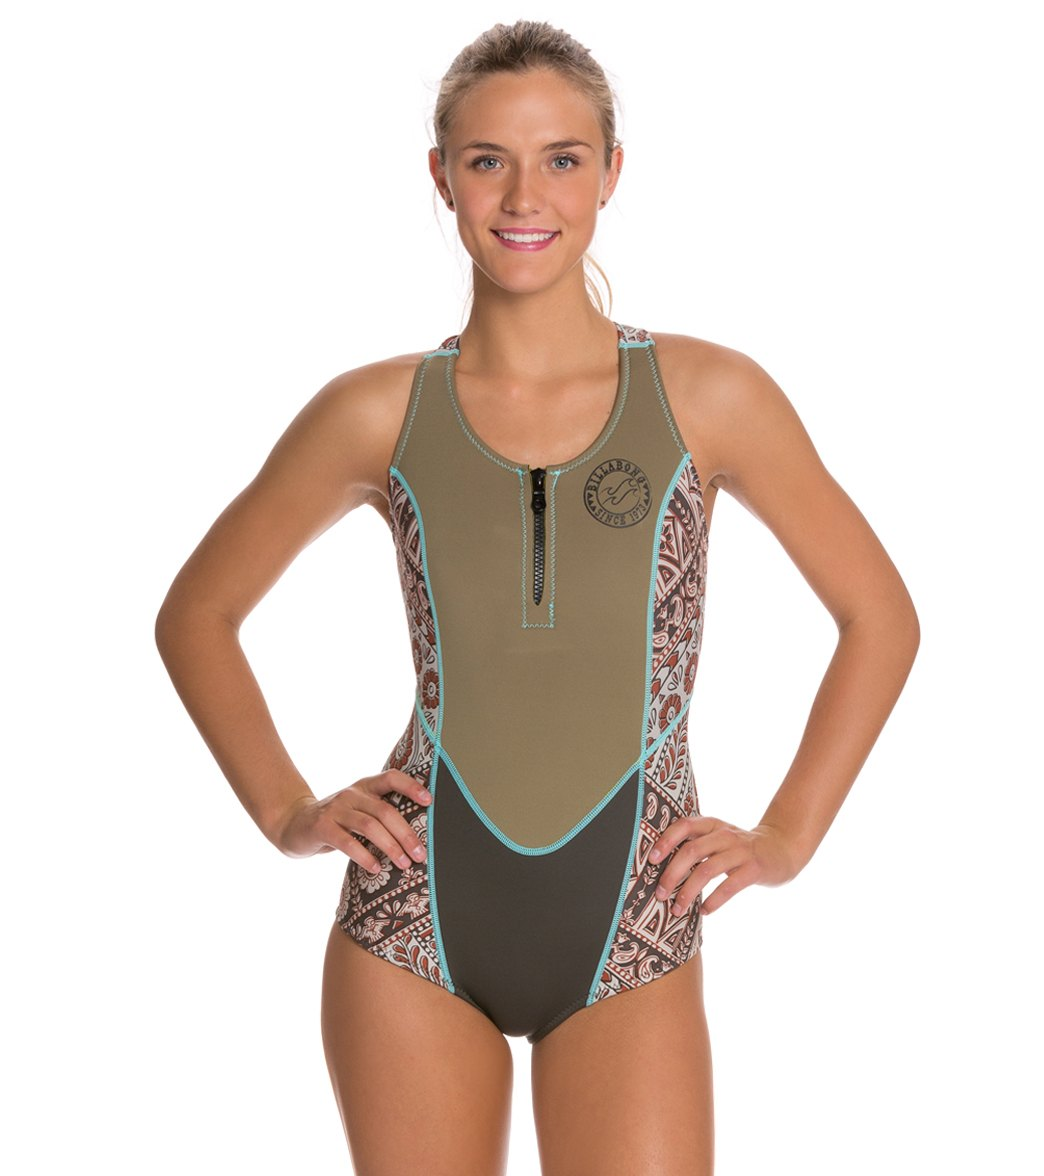 89770558f7 ... Billabong Women s 2MM Shorty Jane Spring Suit Wetsuit. Share